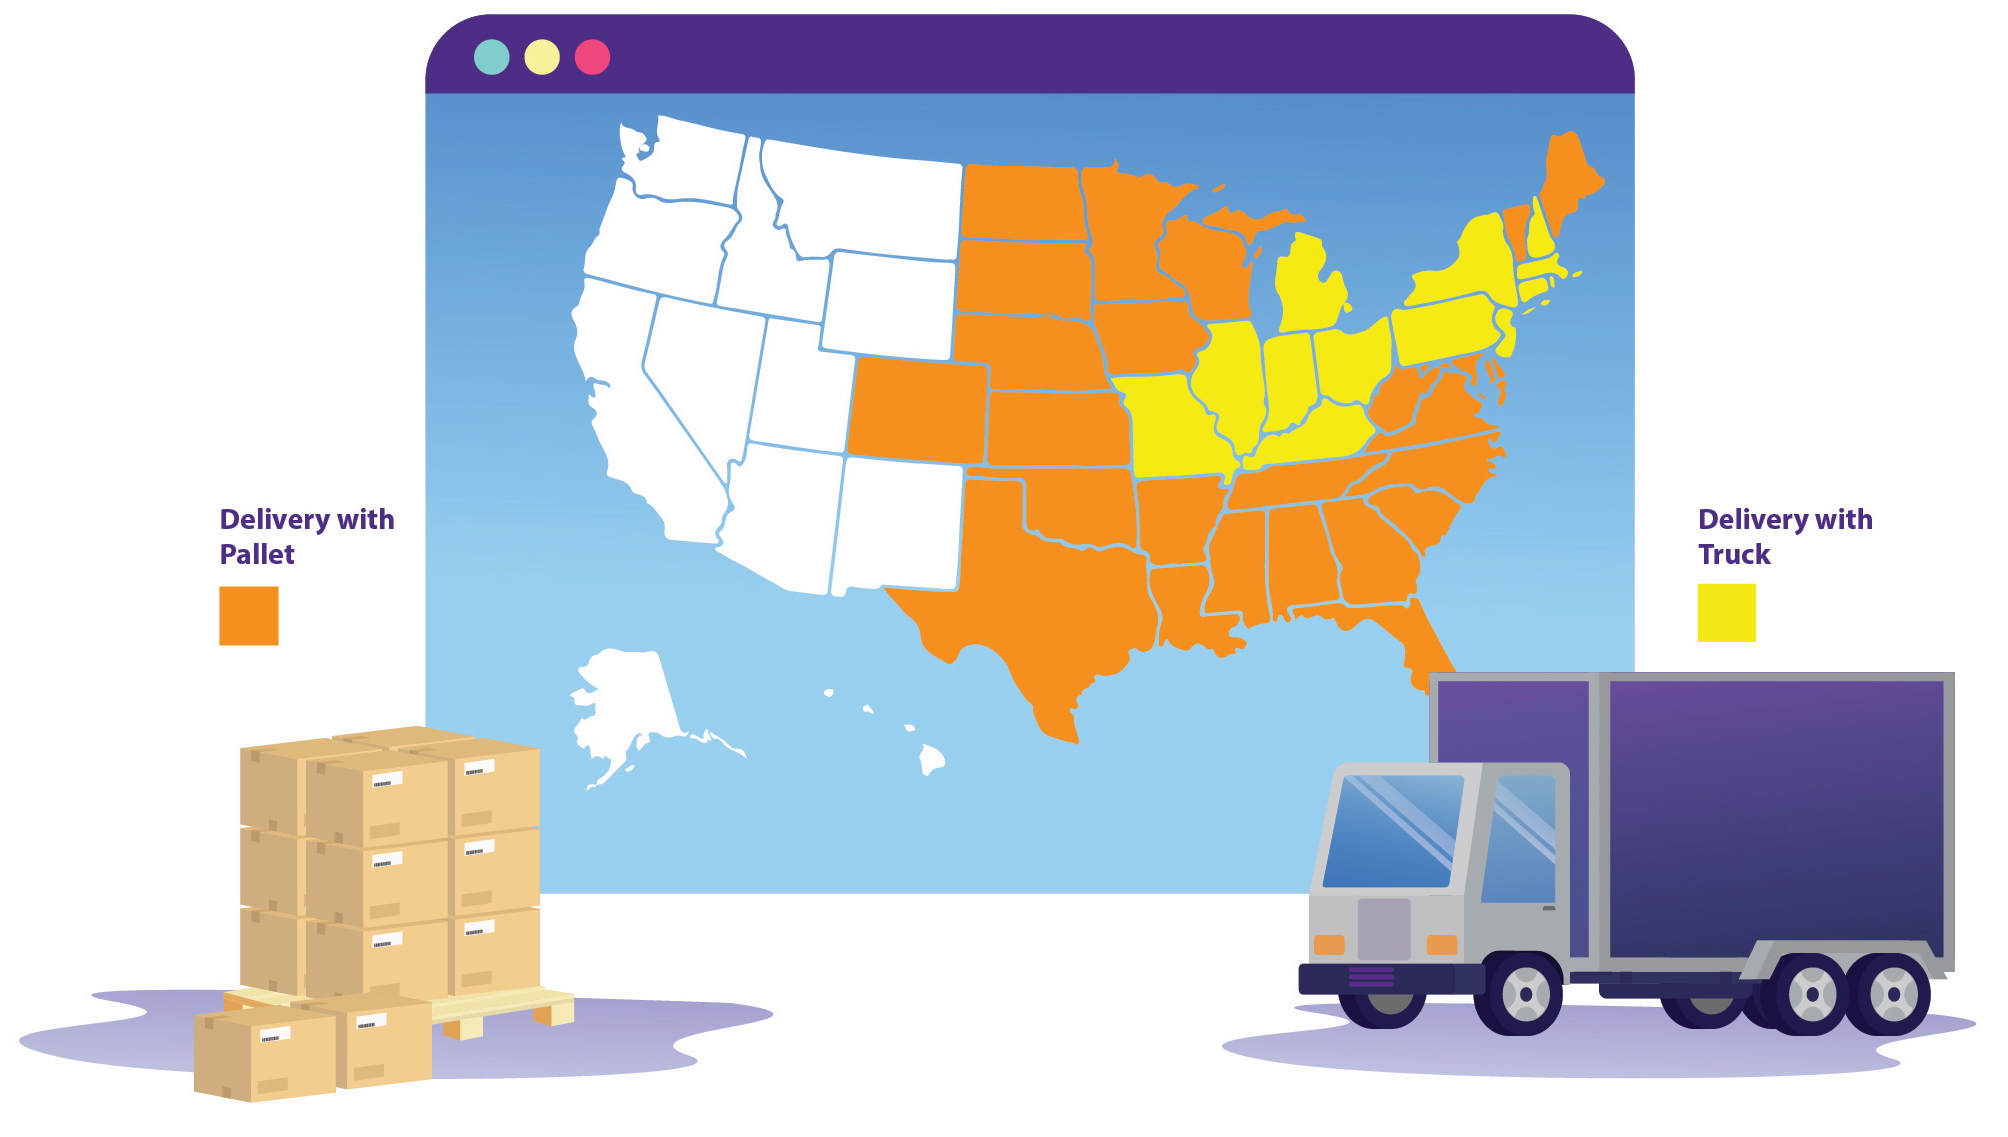 delivery-map.shipping-zones-illustration.white.bkgrd.cropped-01.jpg